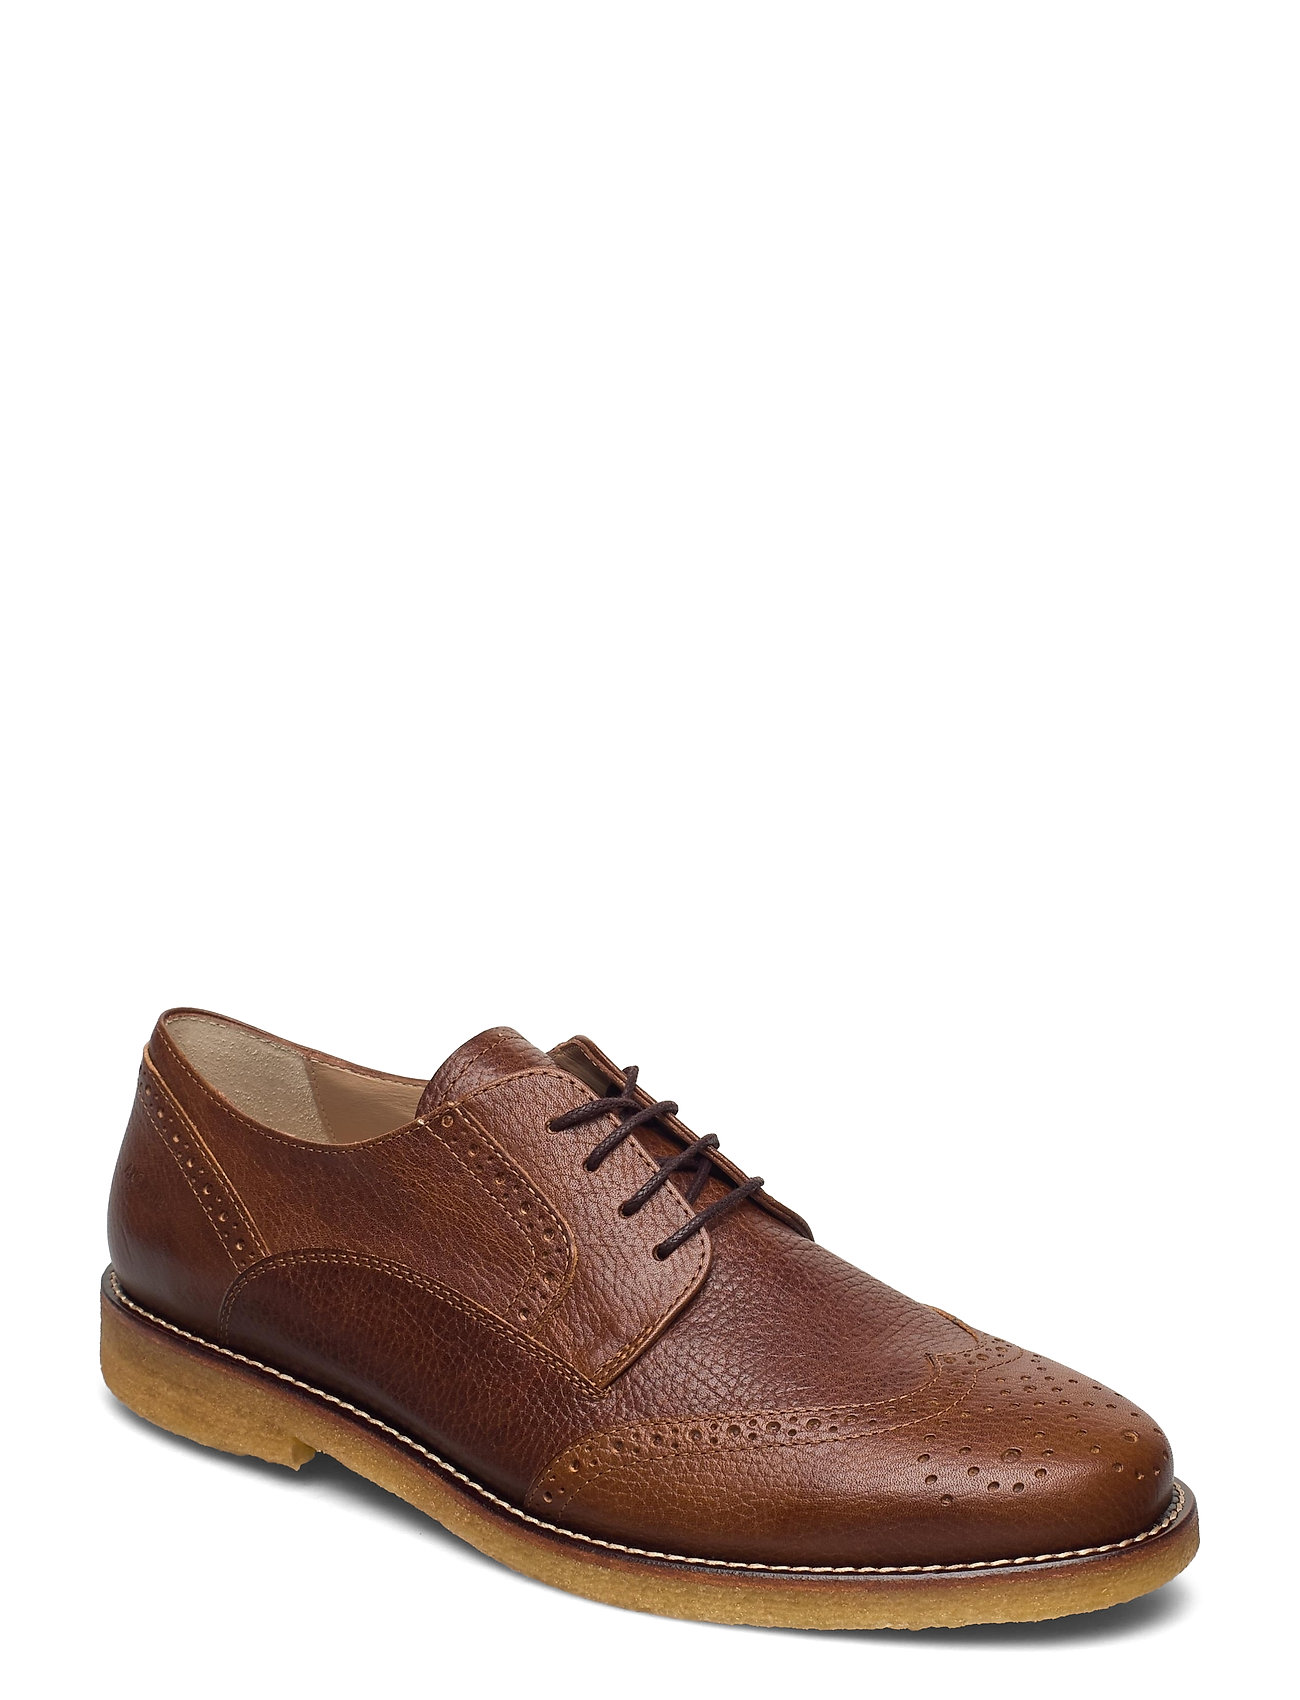 Shoes - Flat - With Lace Shoes Business Laced Shoes Brun ANGULUS